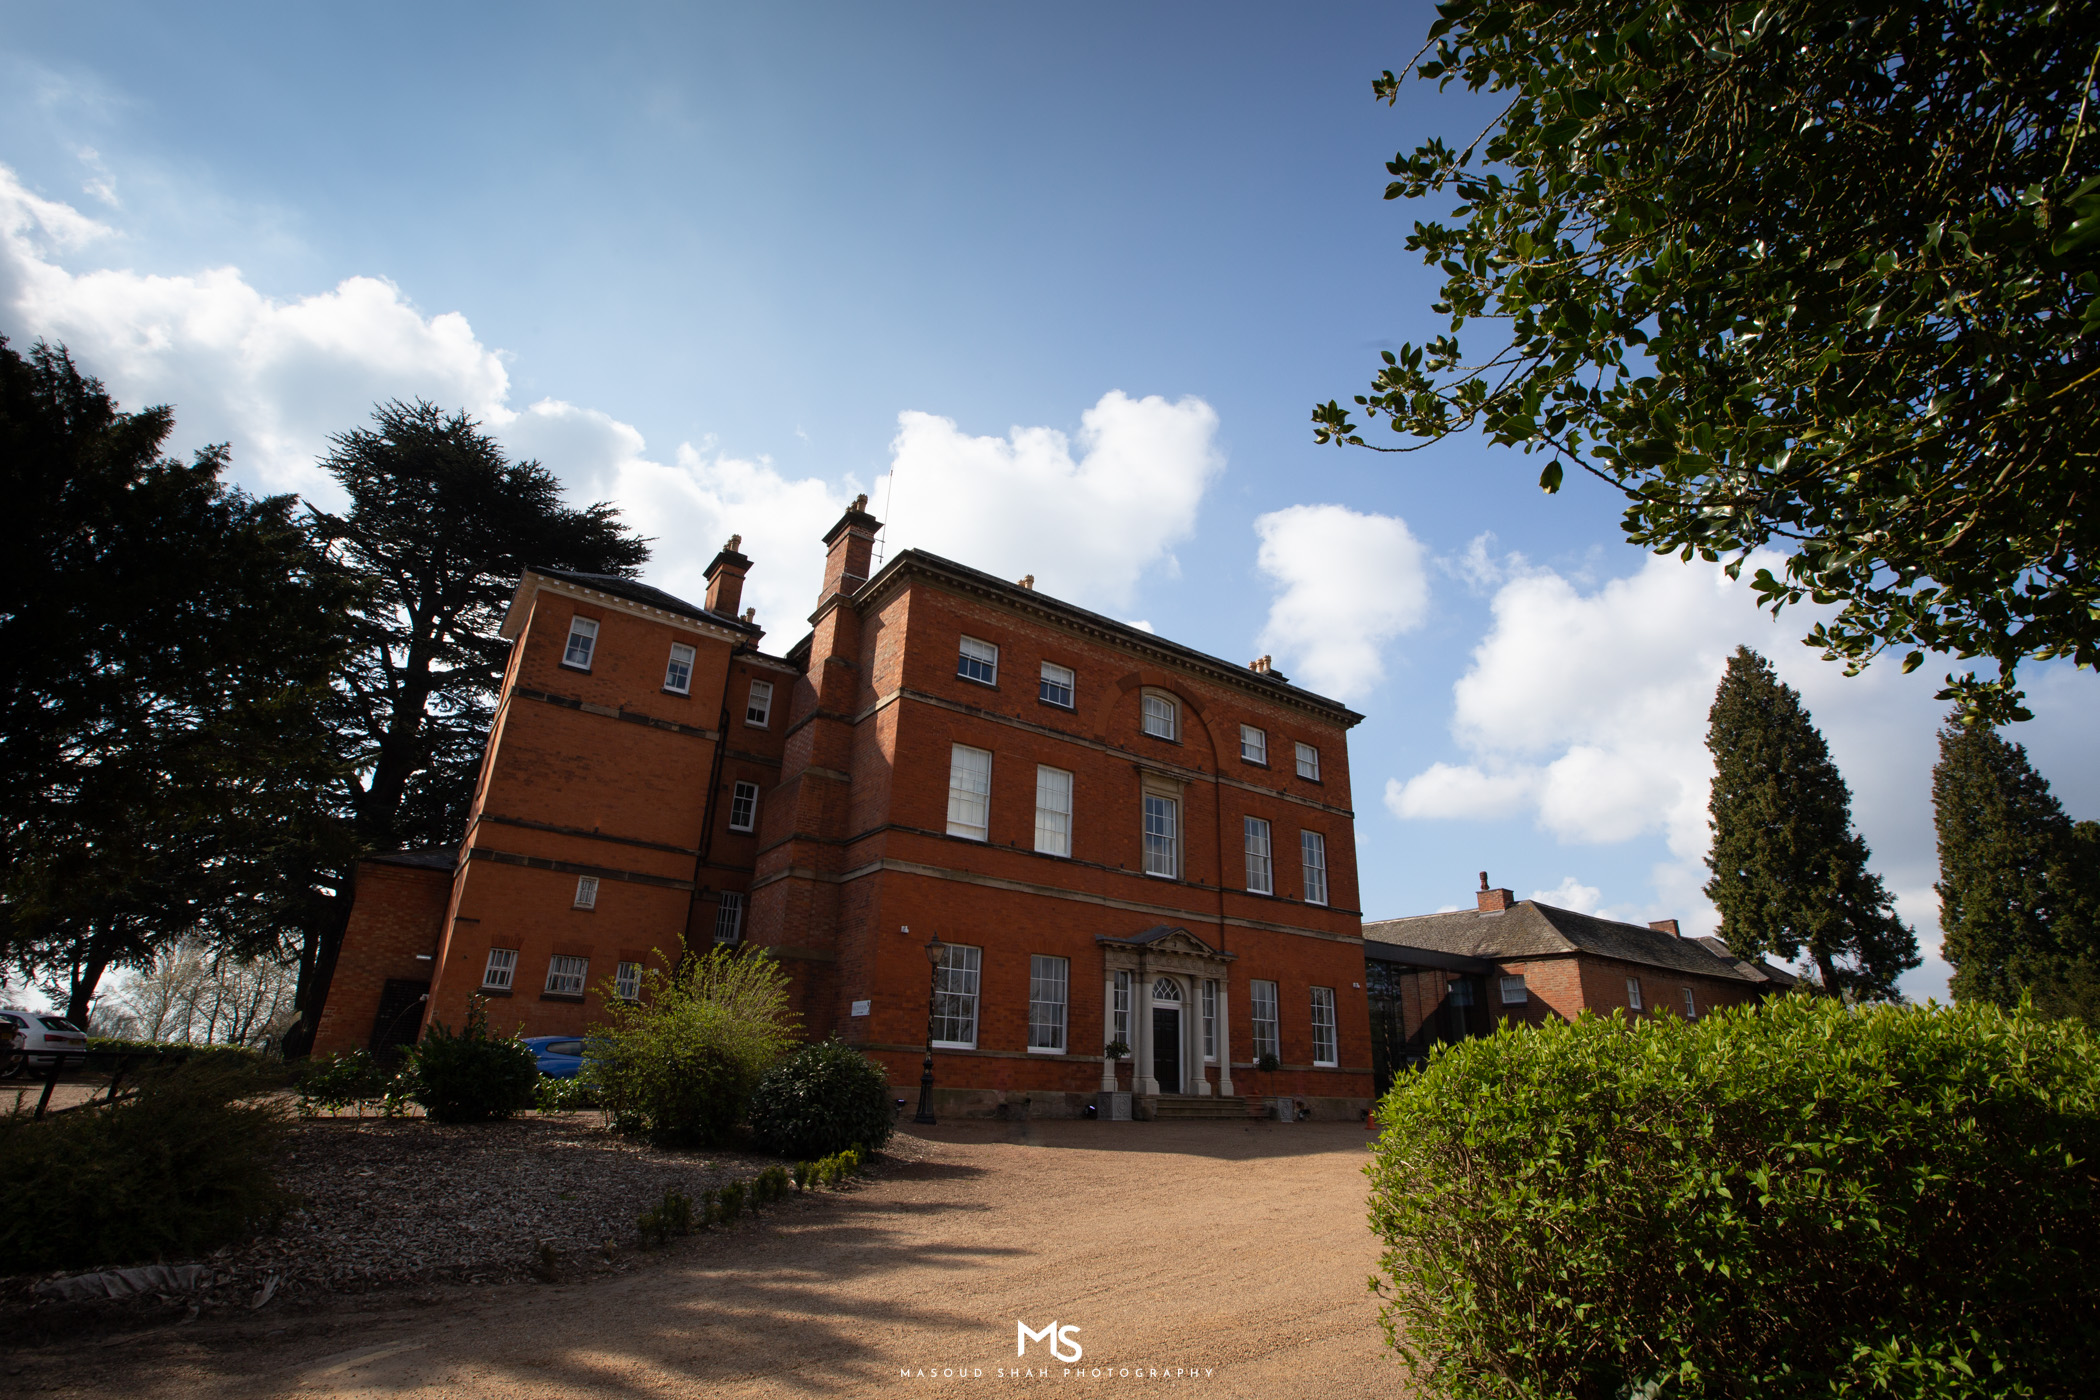 winstanley_house_leicester_shamil_prithy - IMG_9489.jpg